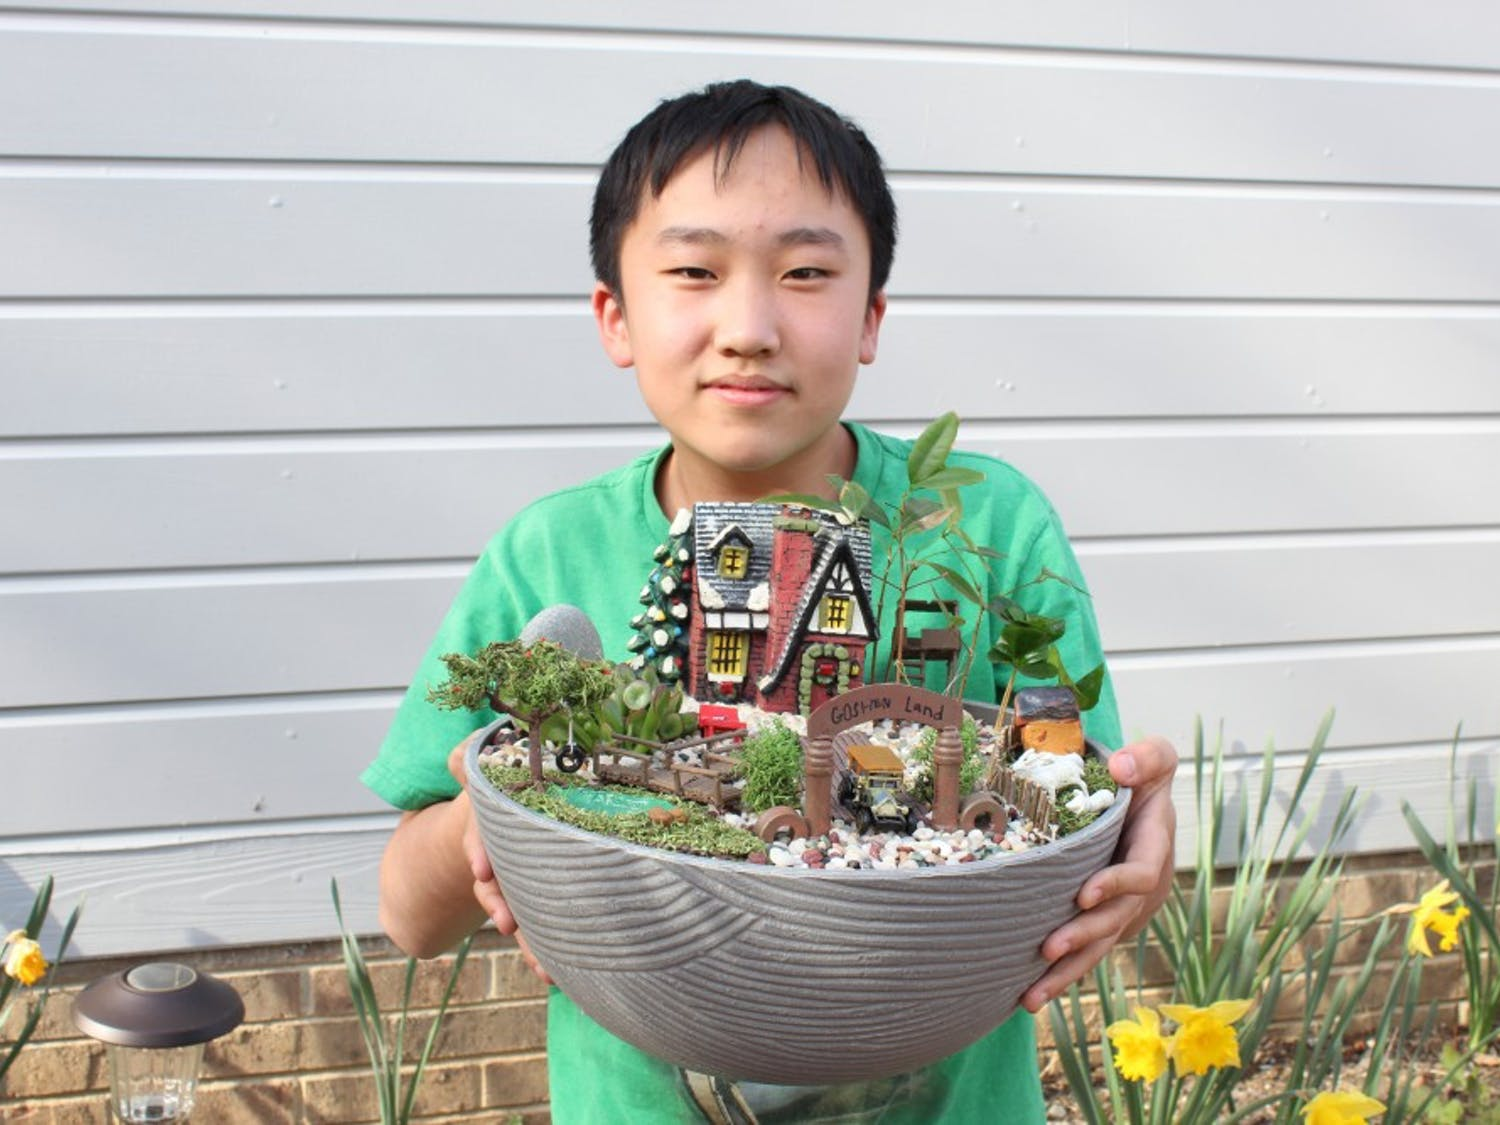 """Chapel Hill student Alex Shen holds his miniature garden """"GoShen Land"""" that he created for the Community in Bloom contest. This contest encourages the community to get creative and find """"trash and treasures""""  around their house to create their own miniature garden. This year's theme is """"Planting a Dream"""" and the deadline to submit your entry is April 25. March 28, 2019. Chapel Hill."""